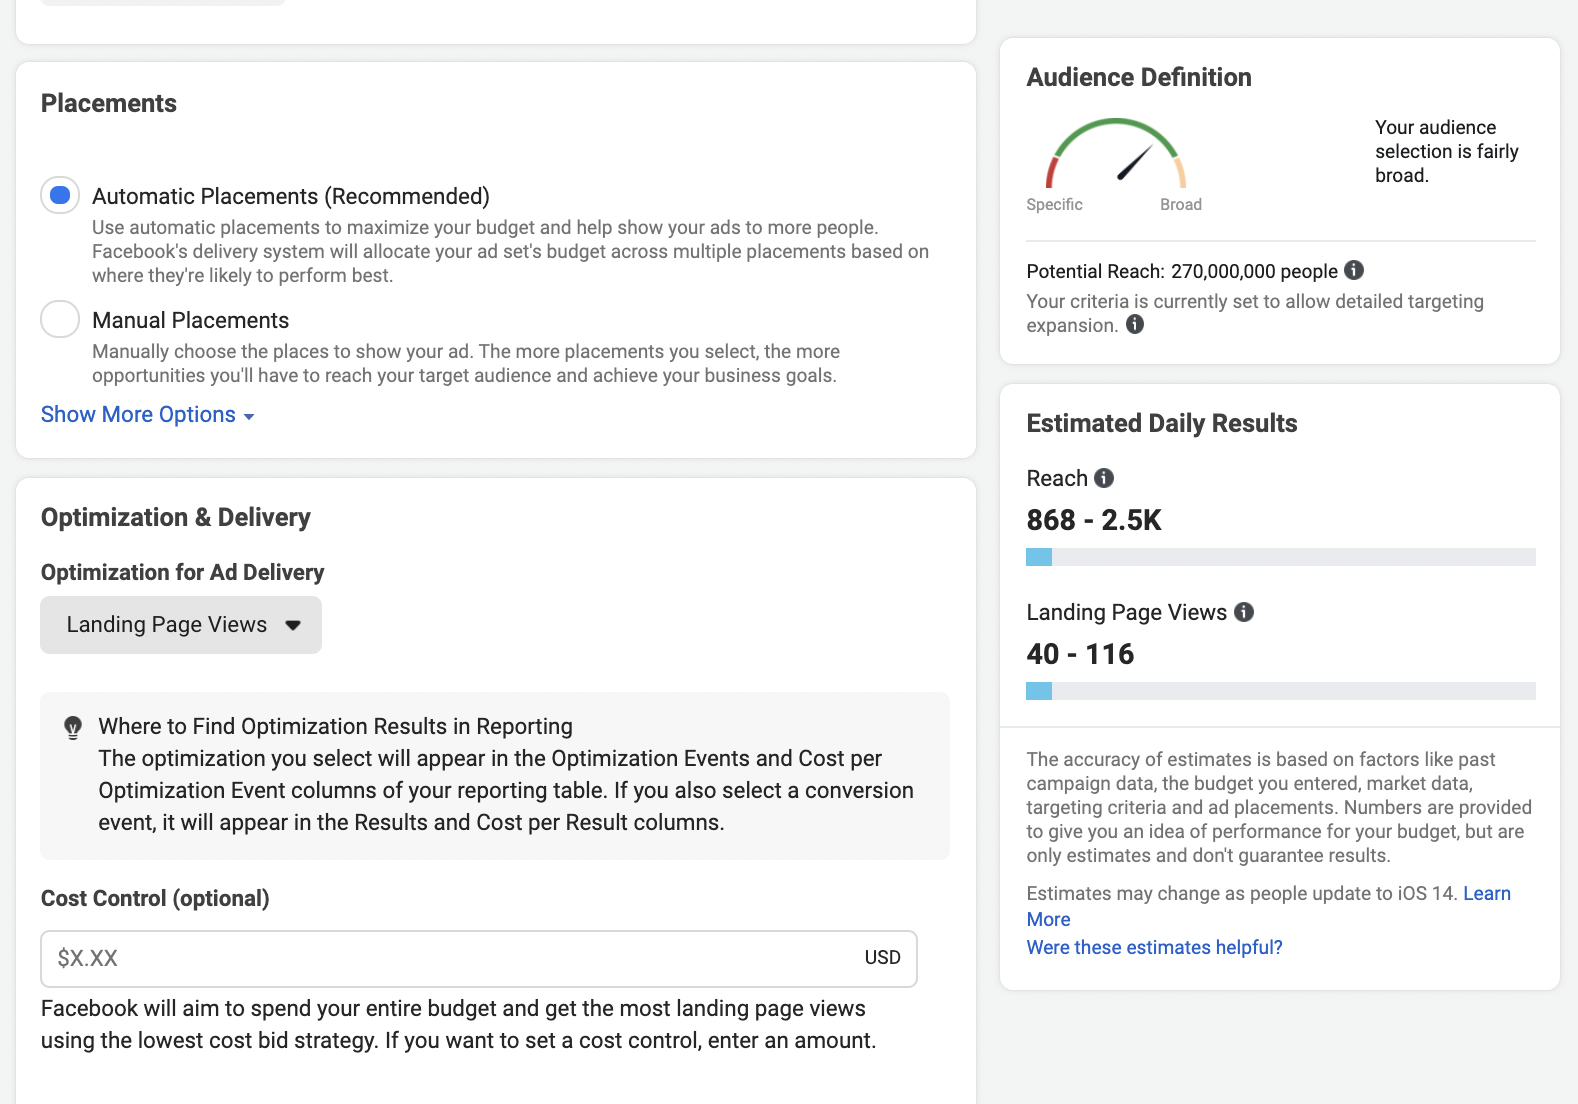 When you change the optimization to landing page views, the reach gets higher